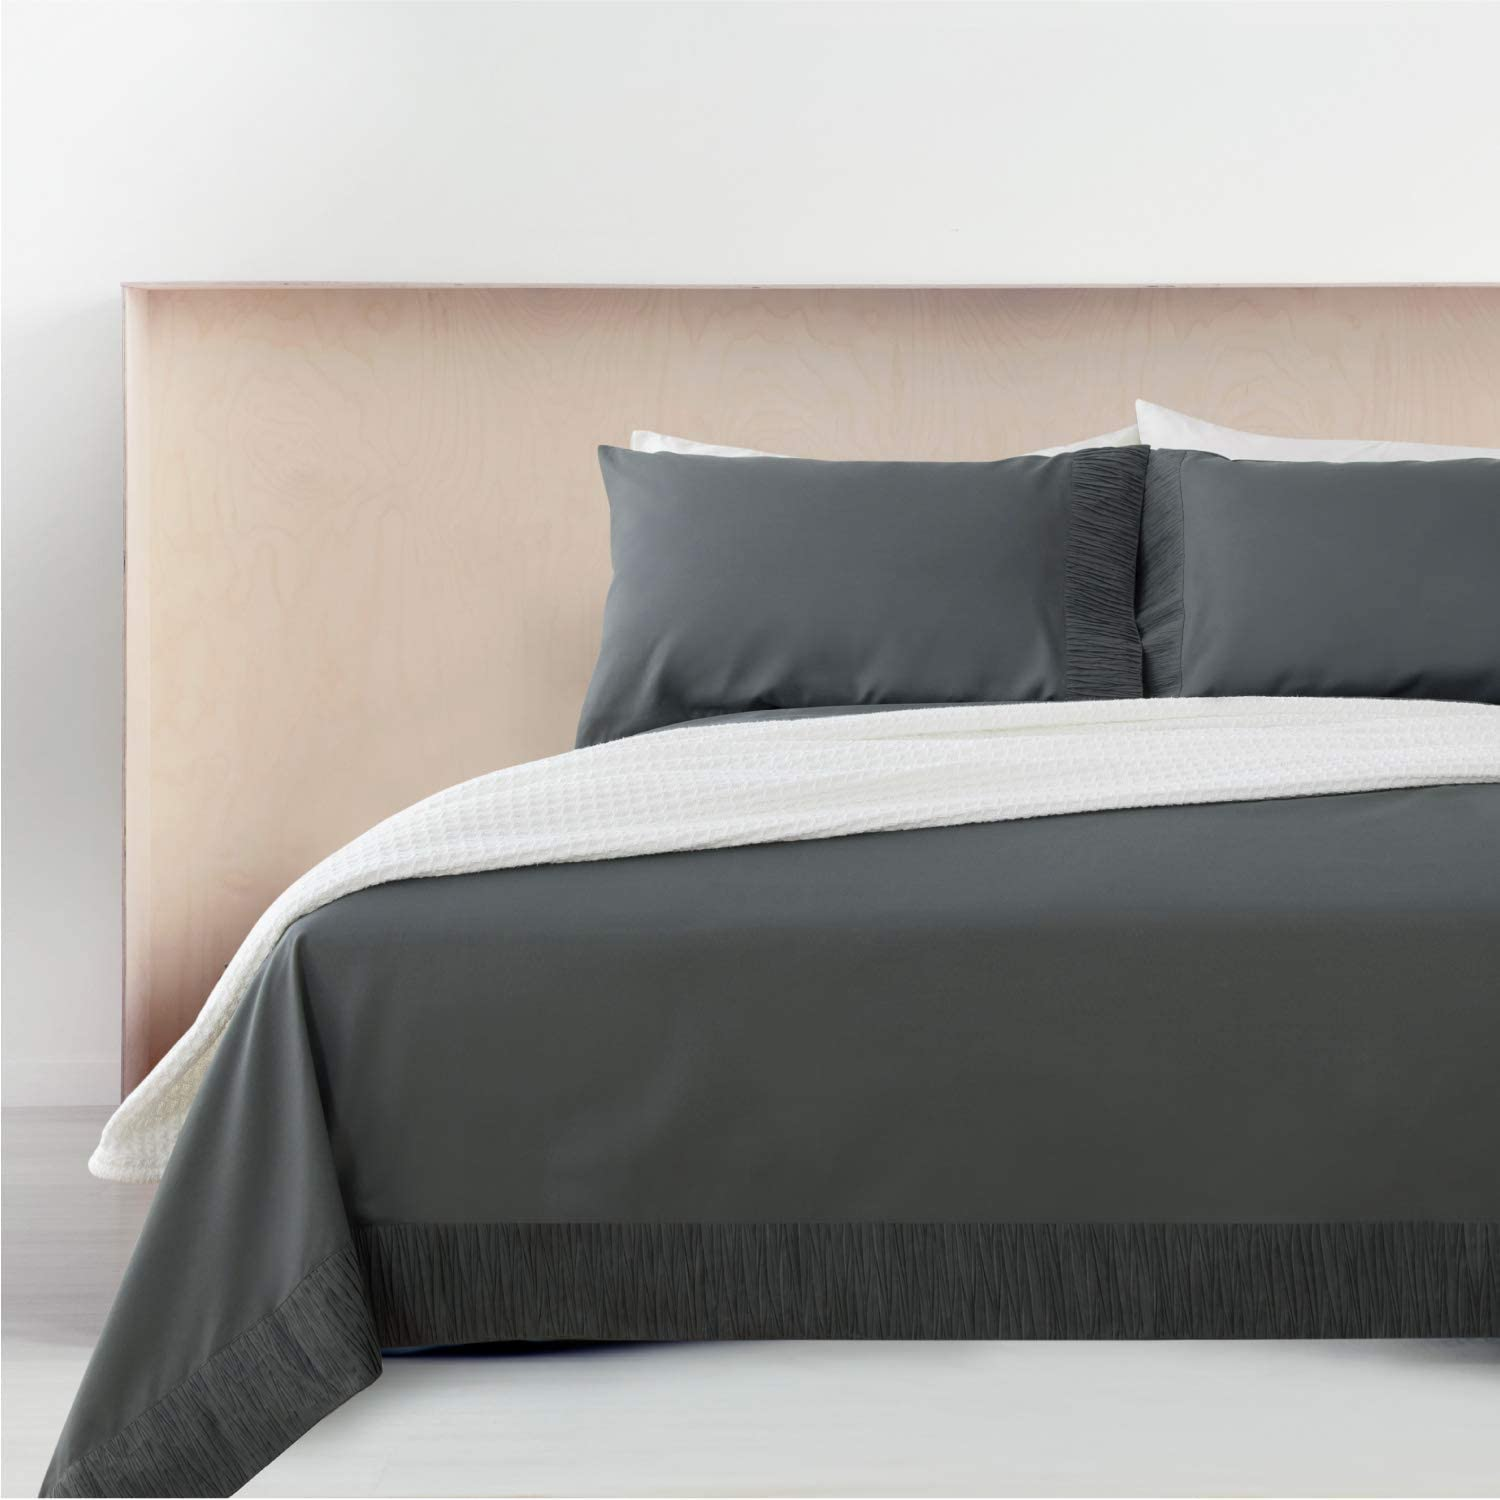 Bedsure Queen Bed Sheets Set Grey - Soft 1800 Bedding Microfiber Sheets for Queen Size Bed - Wrinkle, Fade, Stain Resistant - 4 Pieces